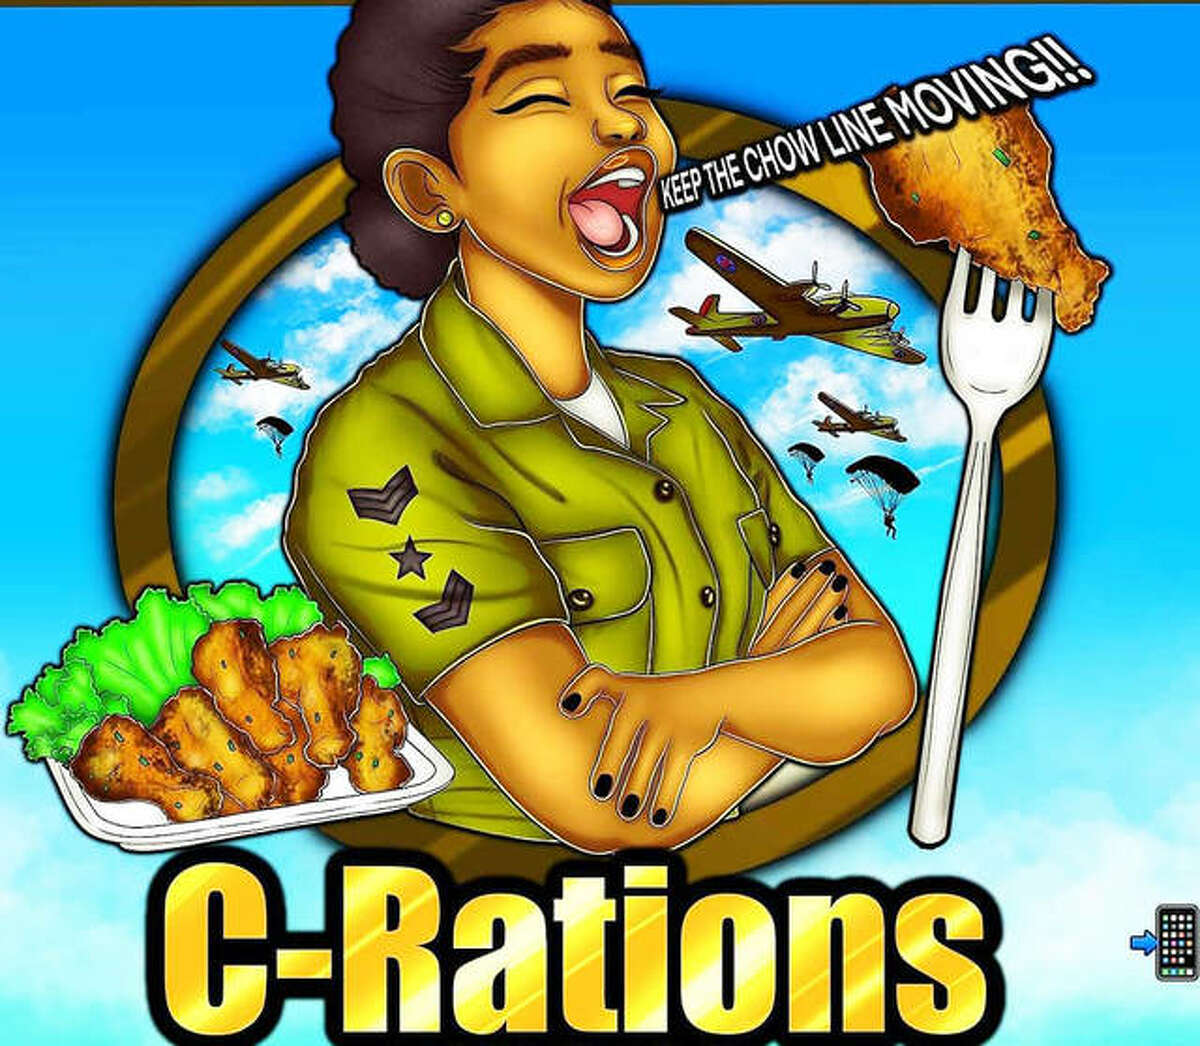 """C-Rations Grub Hub's logo, original hand-drawn and created by Memphis, Tennessee artist Kalunda Smith. C-Rations' owner Christina """"Christy"""" Harvey sought an illustration for her food truck business via Facebook, receiving approximately 40 responses, but Smith was the only artist who did her work by hand, not computer generated or by graphic design software. Smith personally called Harvey and they collaborated on the design, featuring military symbolism for which Harvey's heart will always belong, she said. Harvey joined the military when she was 17 and retired in 2014 at age 39."""